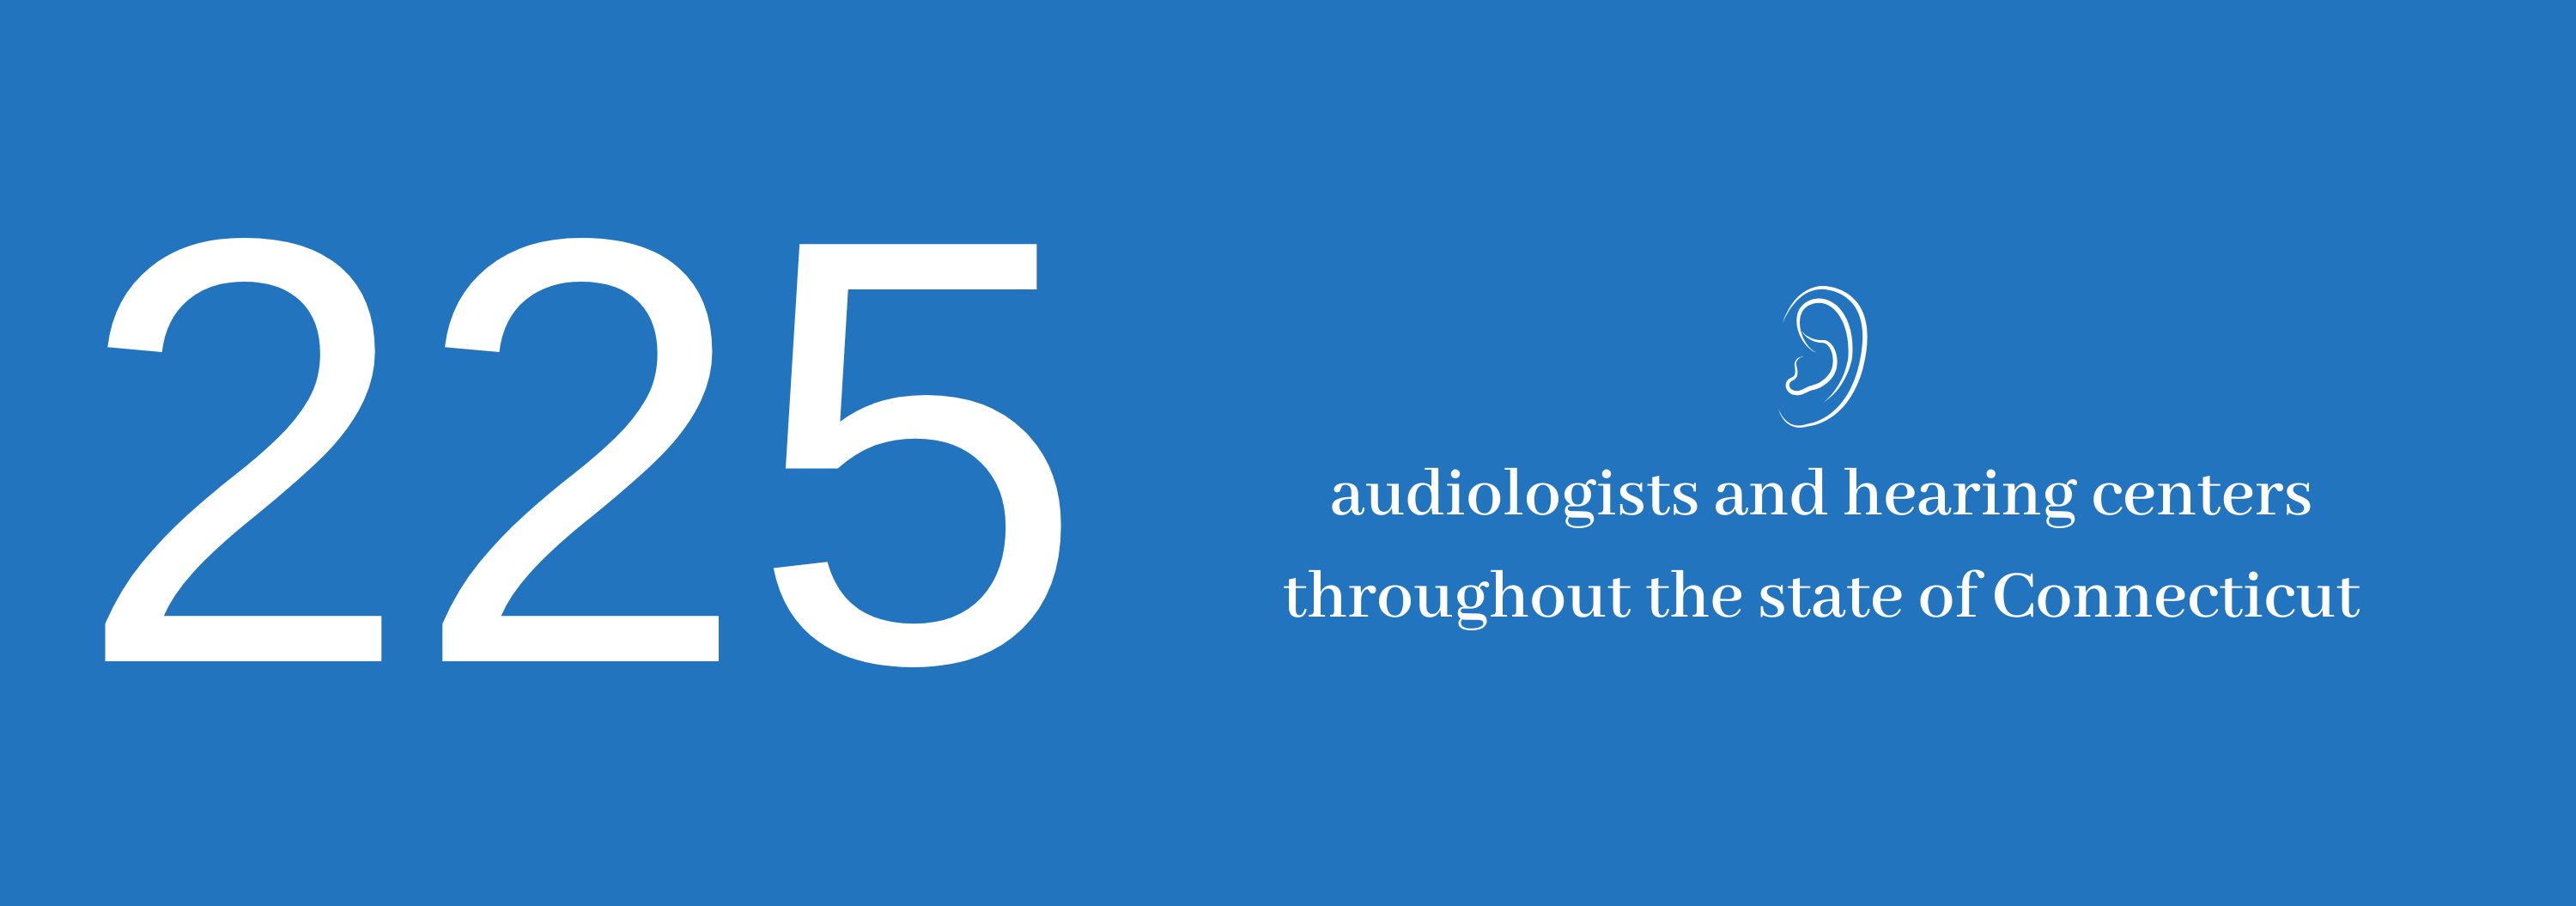 225 audiologists and hearing centers throughout the state of Connecticut